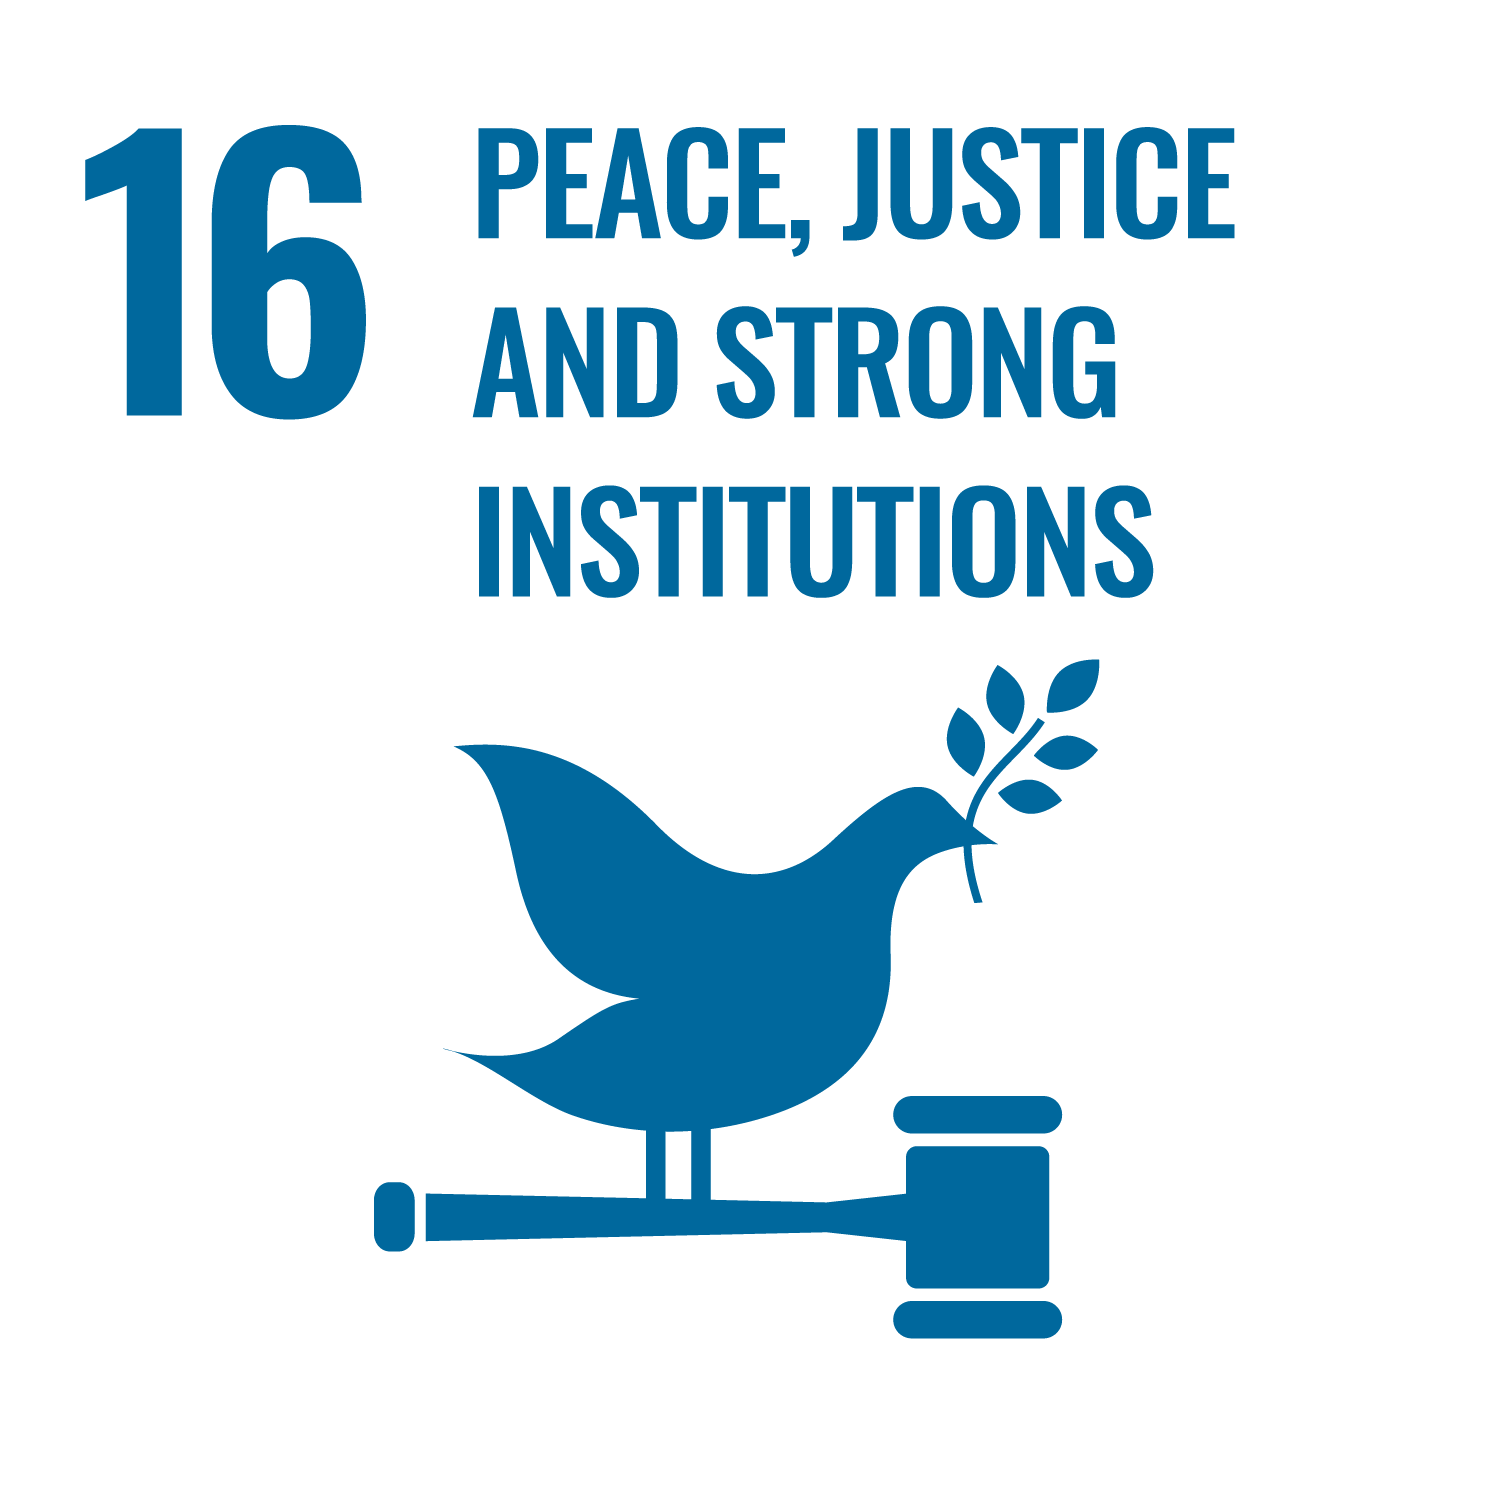 (16) Peace, Justice and Strong Institutions